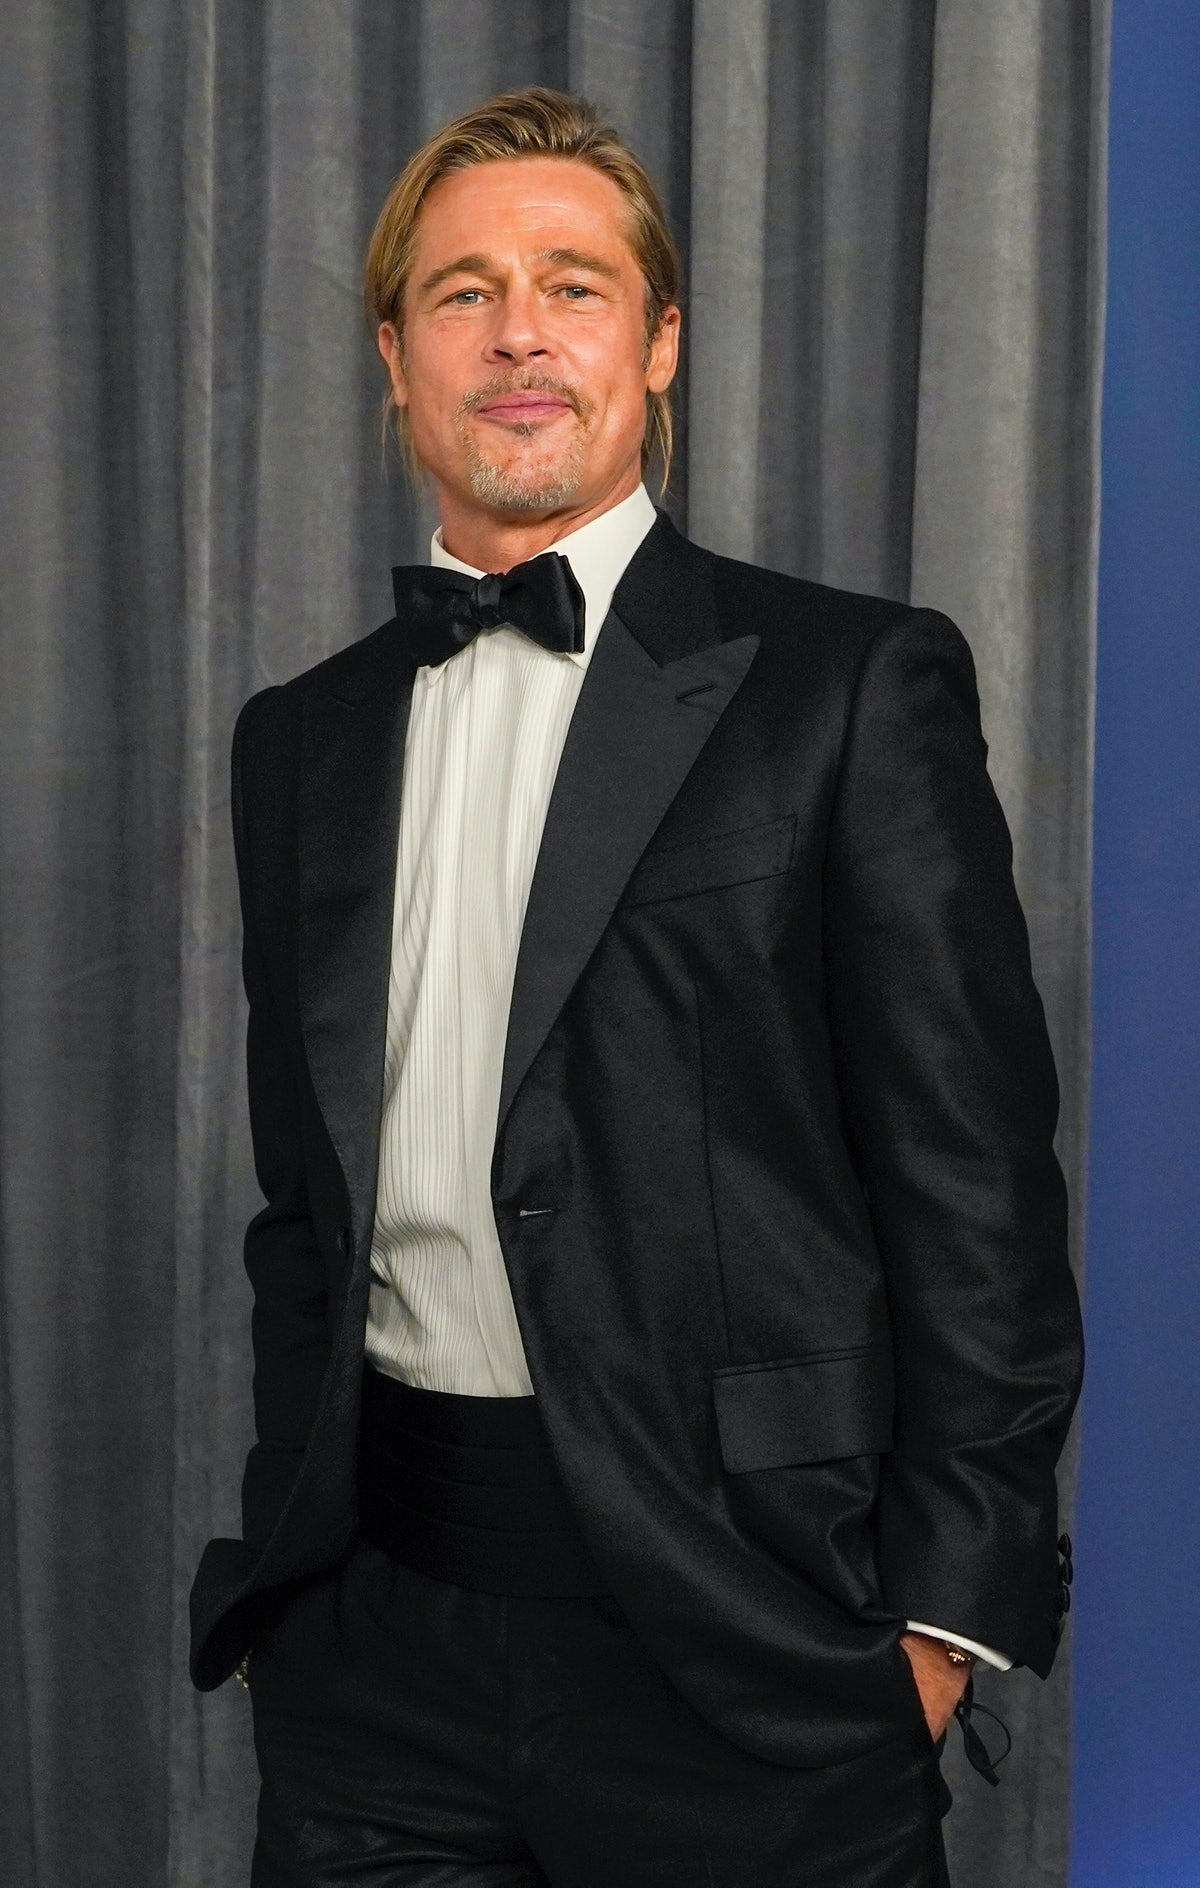 LOS ANGELES, CALIFORNIA - APRIL 25: Brad Pitt poses in the press room at the Oscars on Sunday, April 25, 2021, at Union Station in Los Angeles. (Photo by Chris Pizzello-Pool/Getty Images)